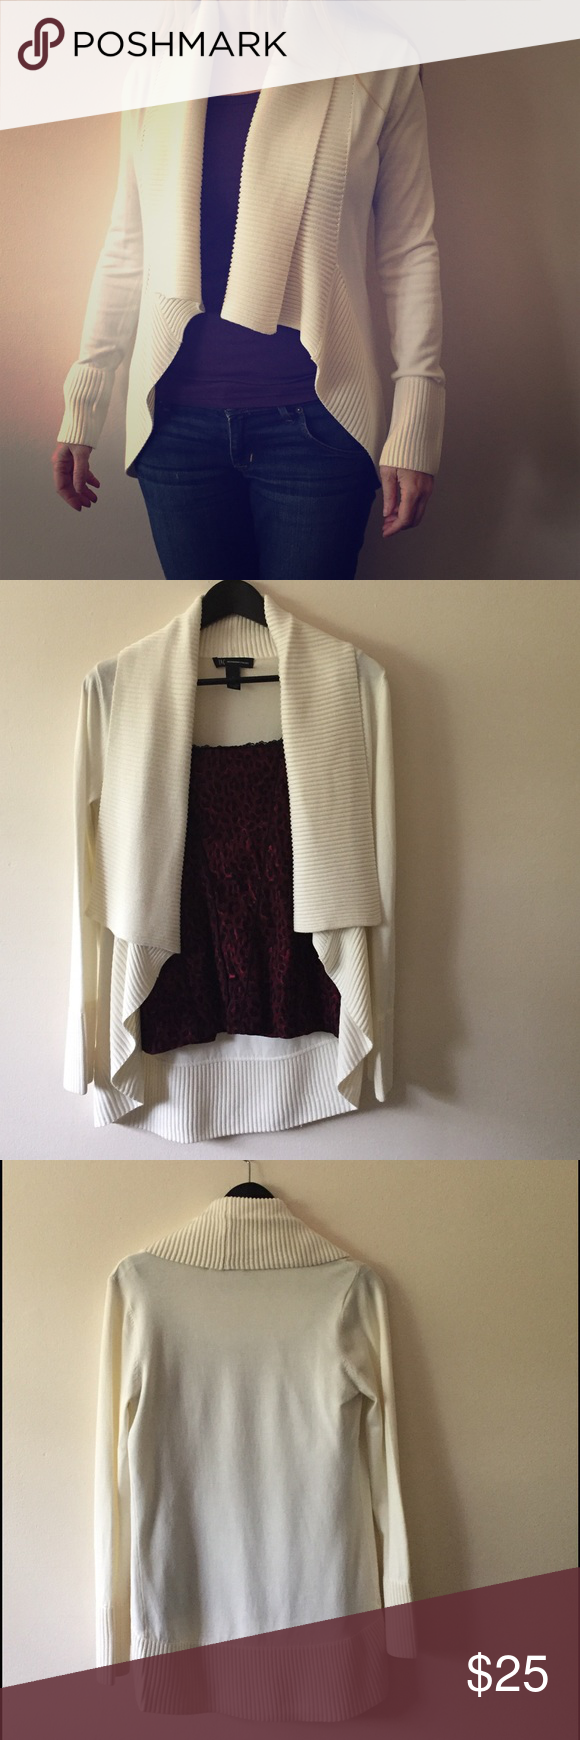 INC International Concepts Cardigan from Macy's Beautiful cream ...